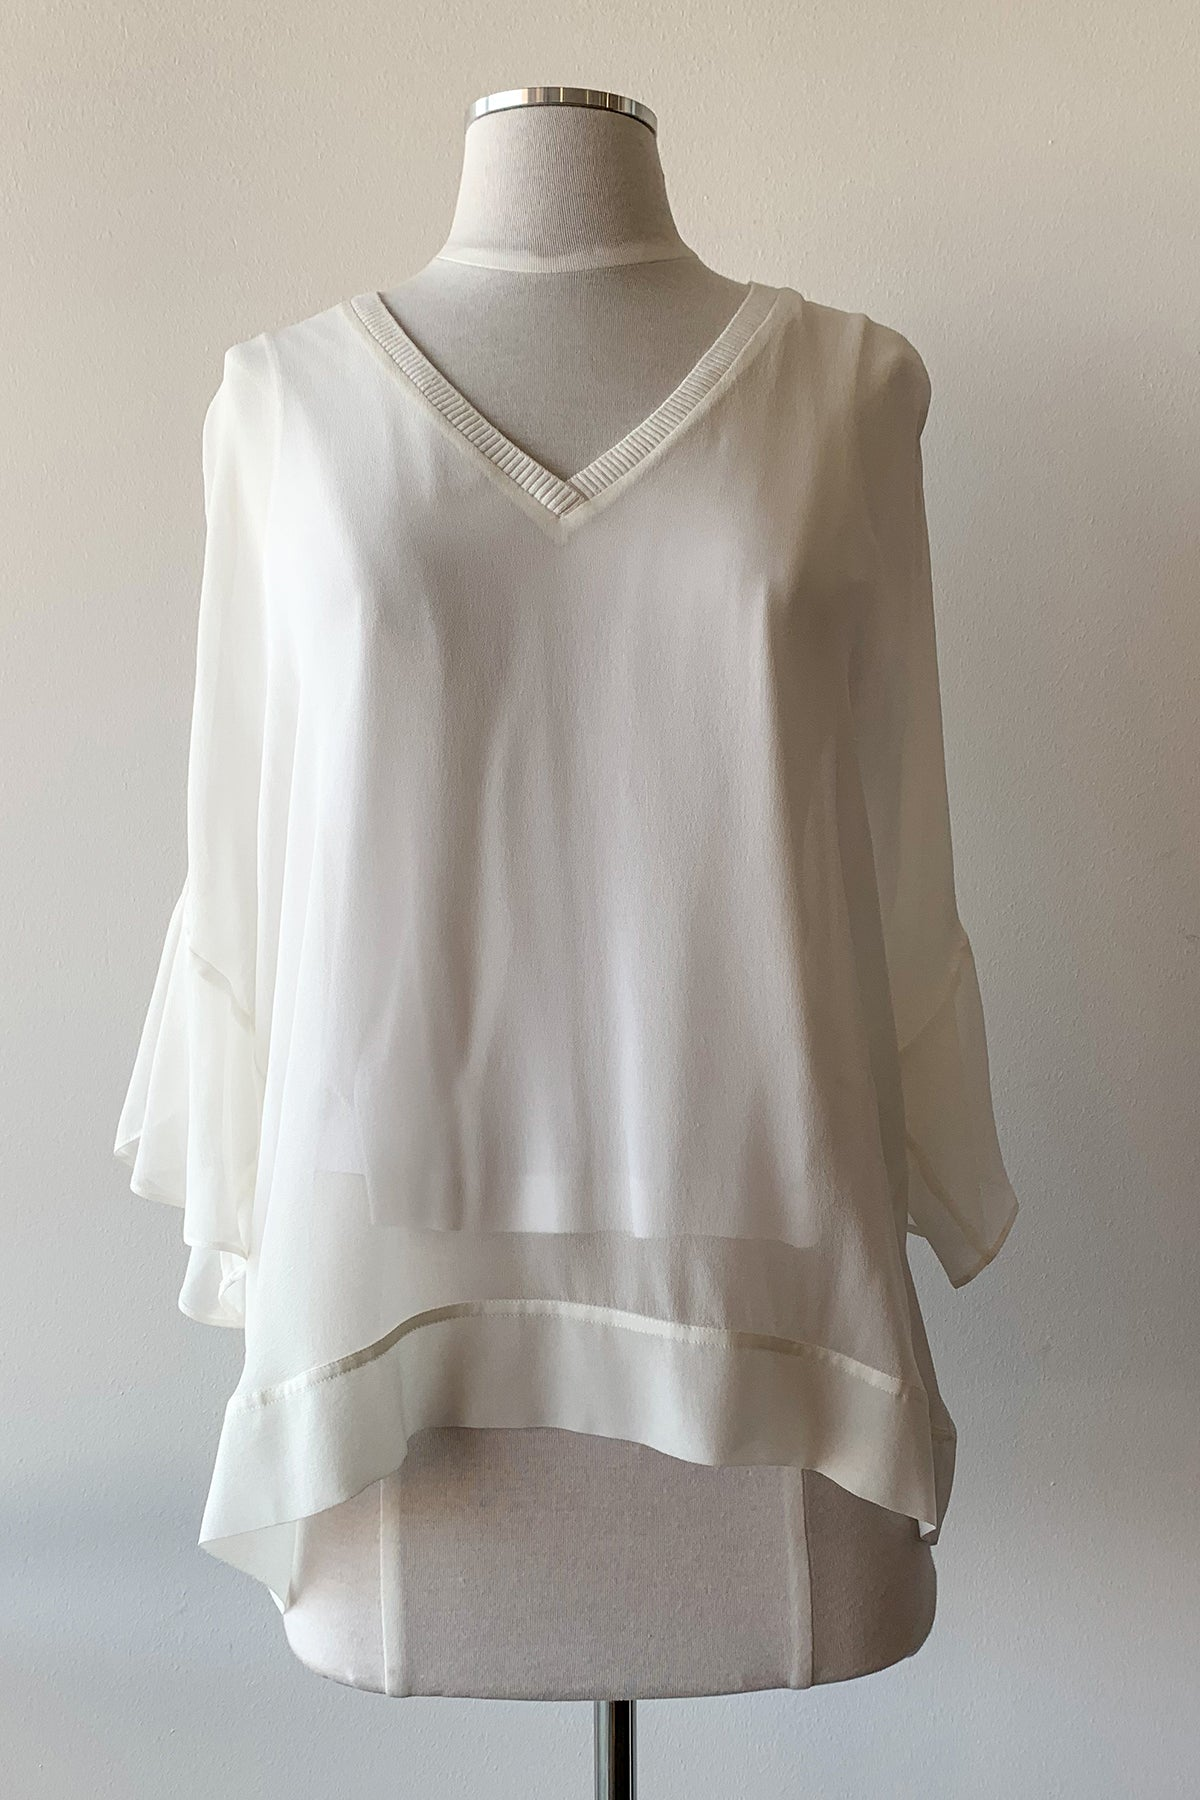 Go Sheer Romance Blouse